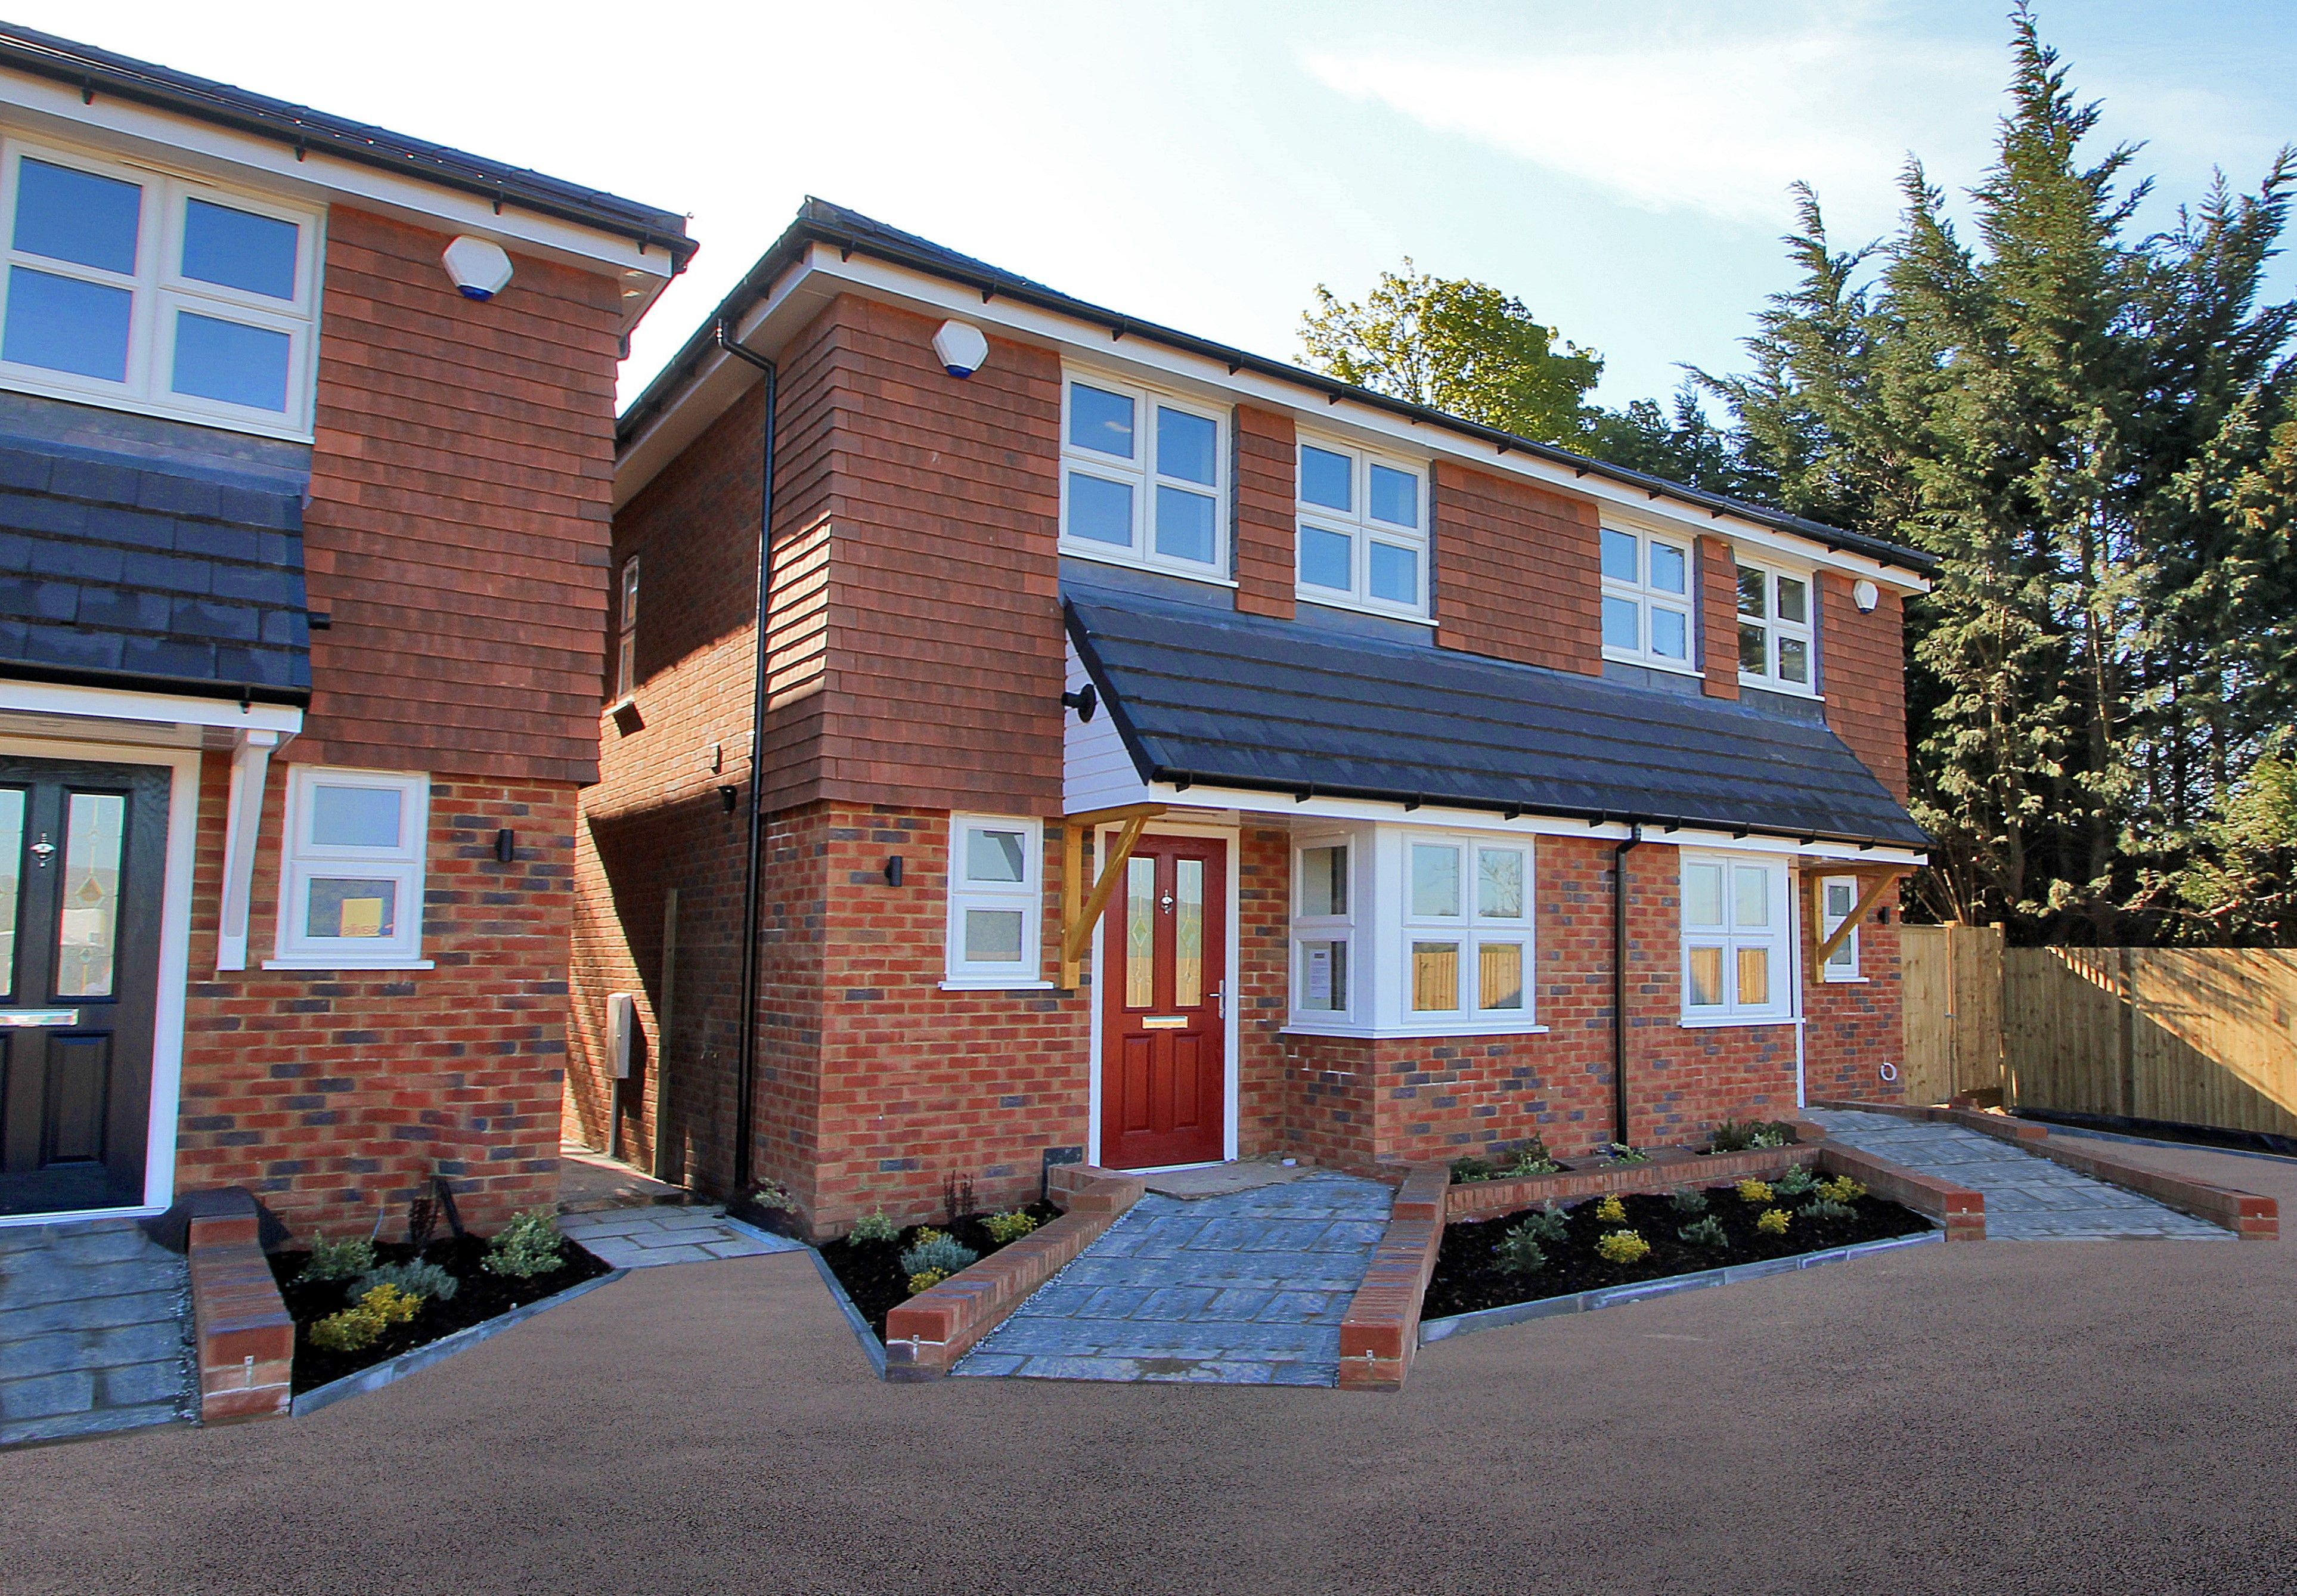 Exterior view of our development in Farningham, Kent